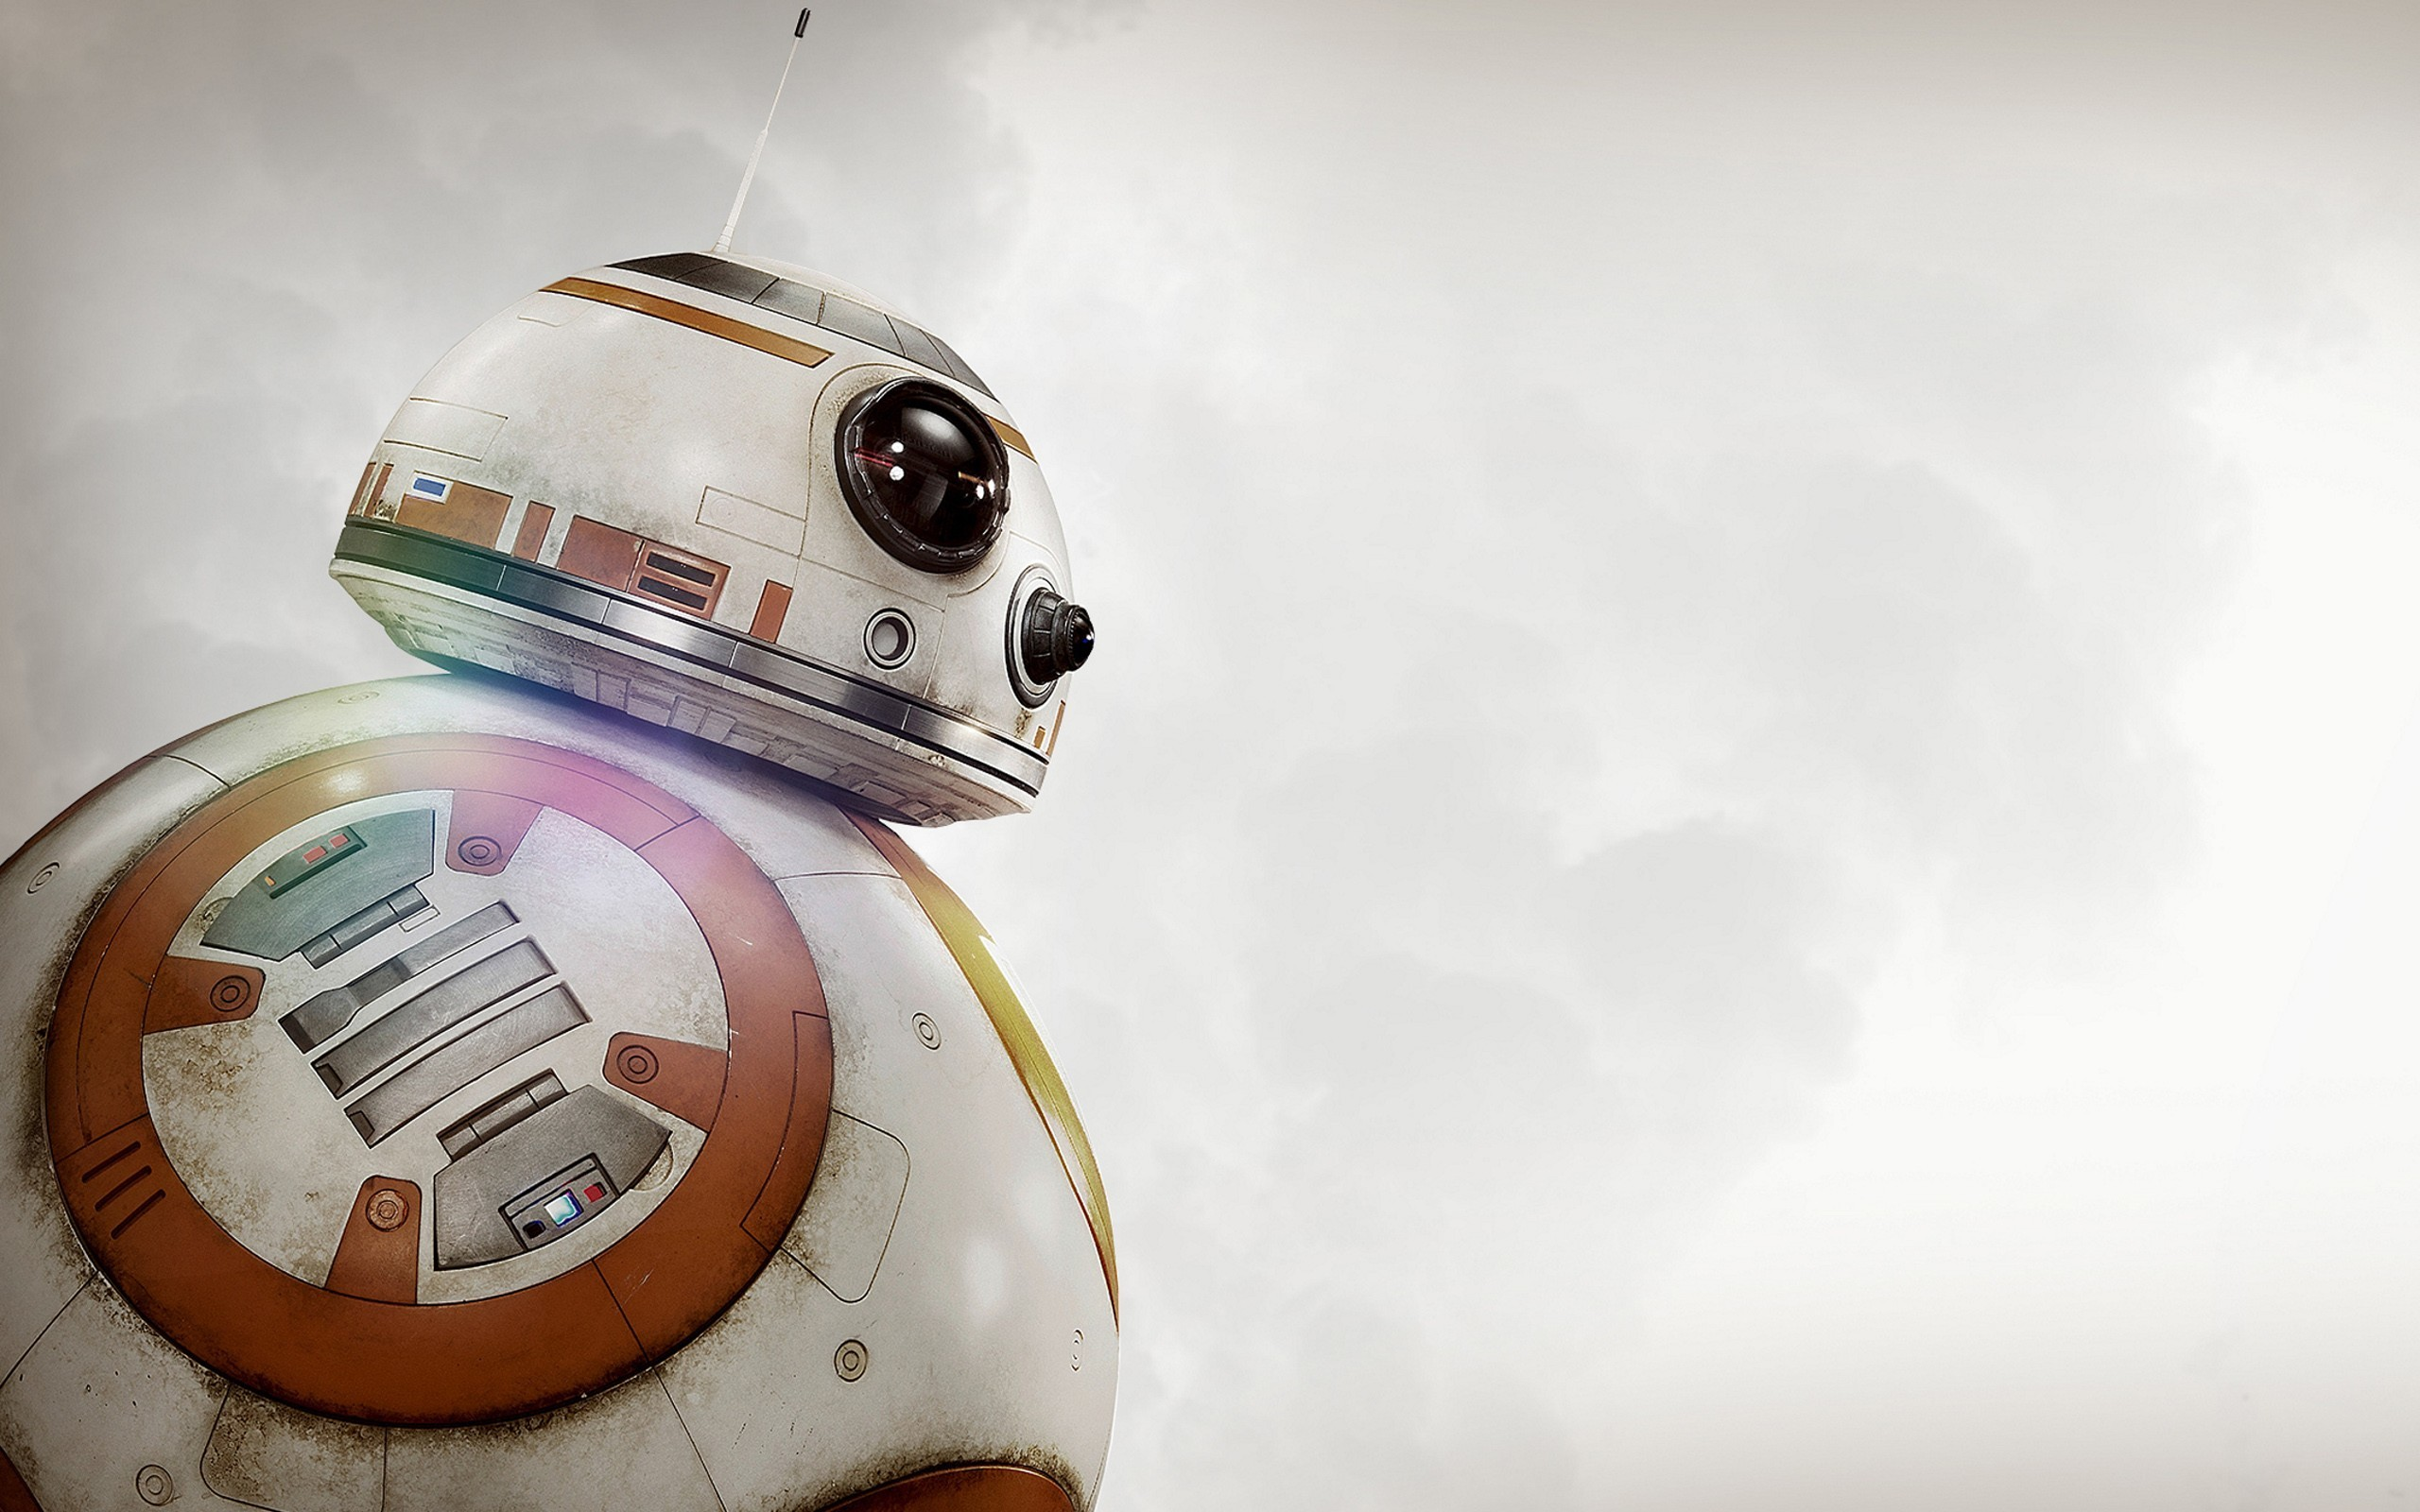 2560x1600 Stormtrooper, Star Wars, r2 D2, The Force, Rey Wallpaper in   Resolution